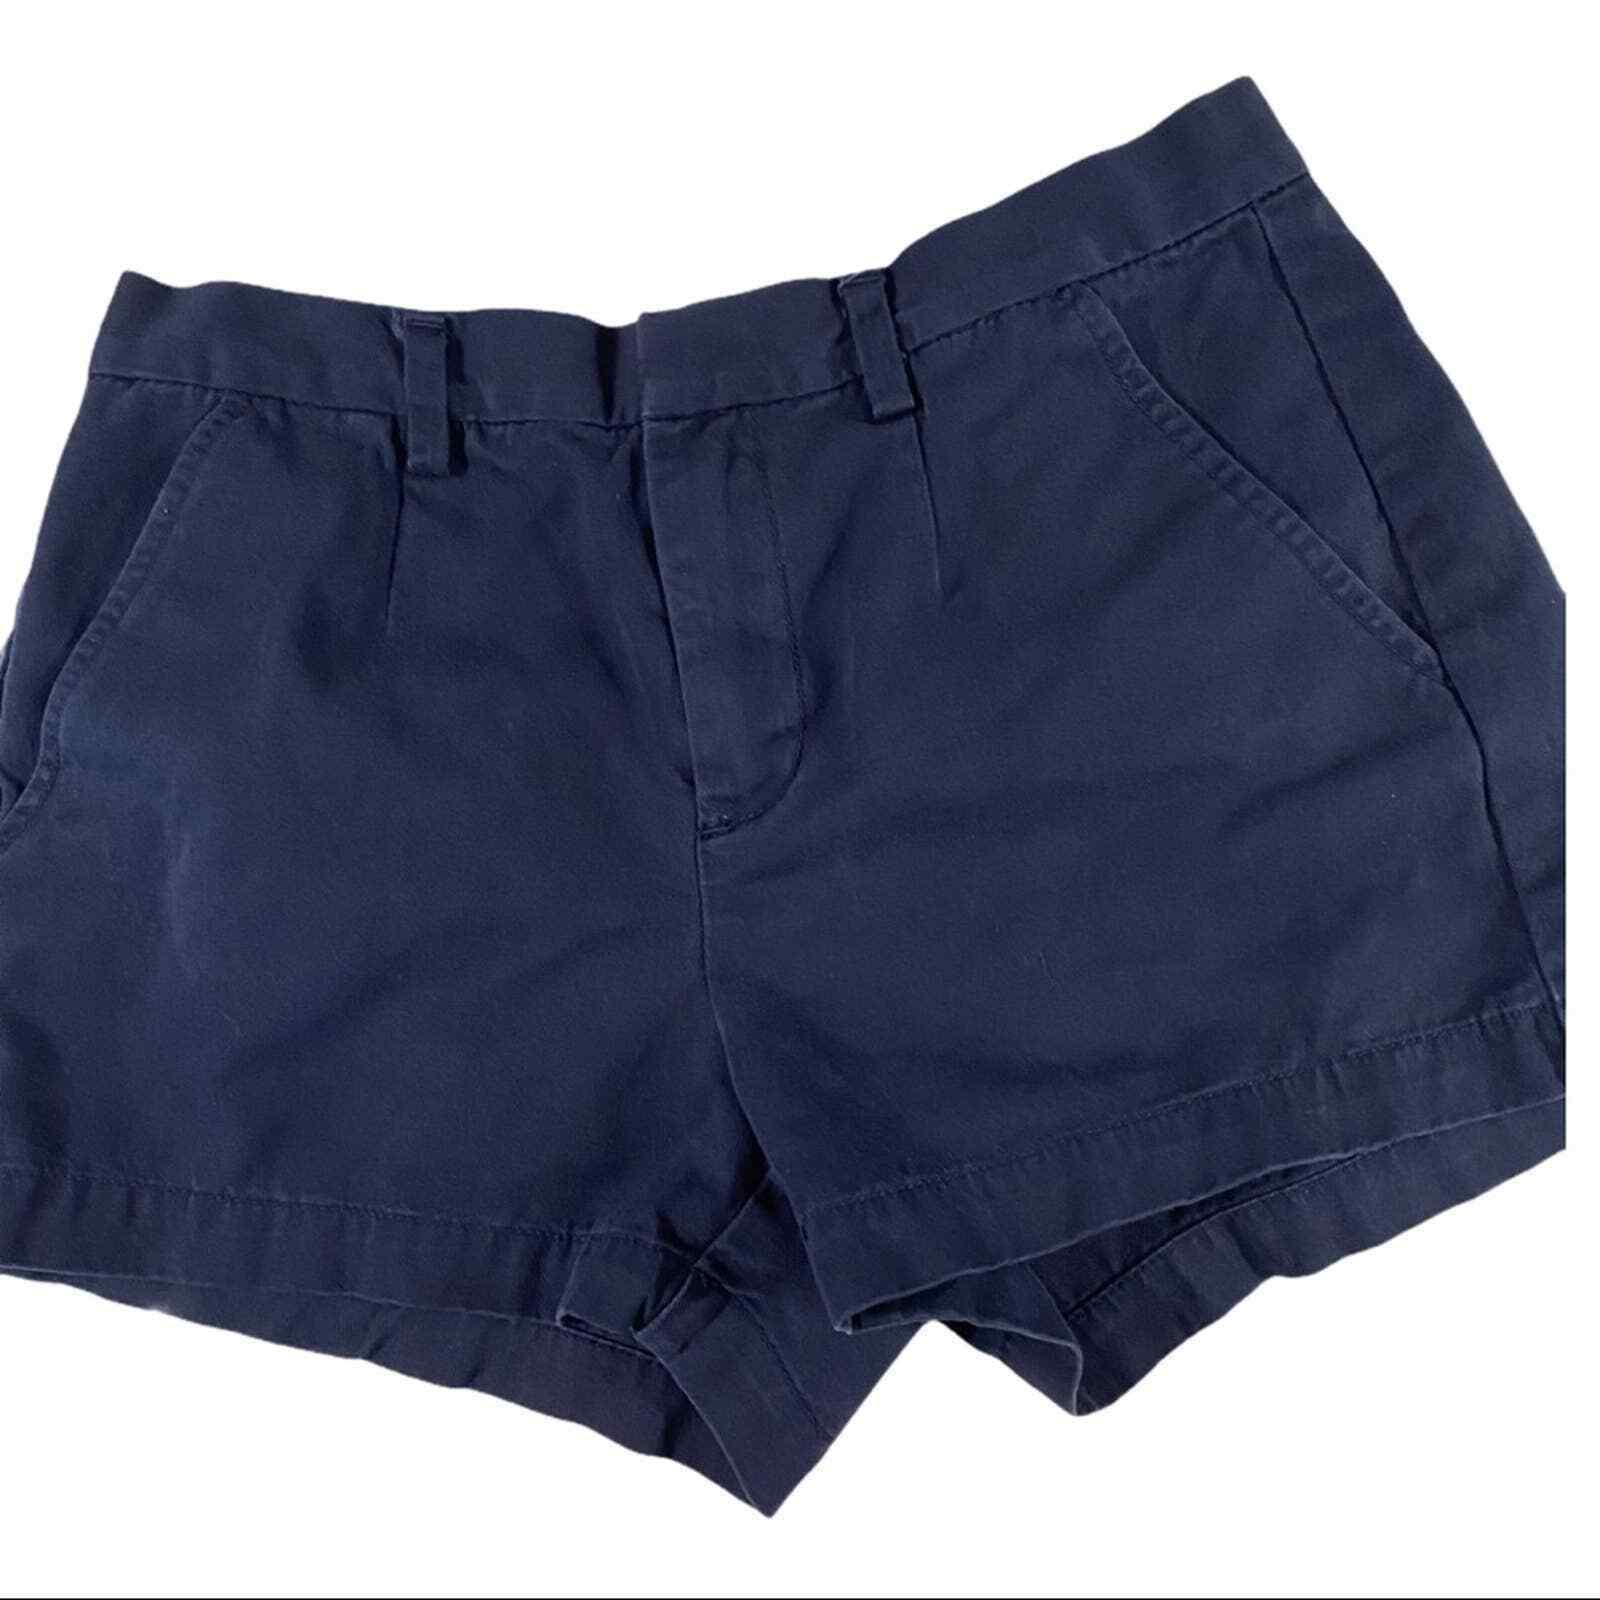 Madewell Tailored Shorts in Deep Navy 4 - image 4